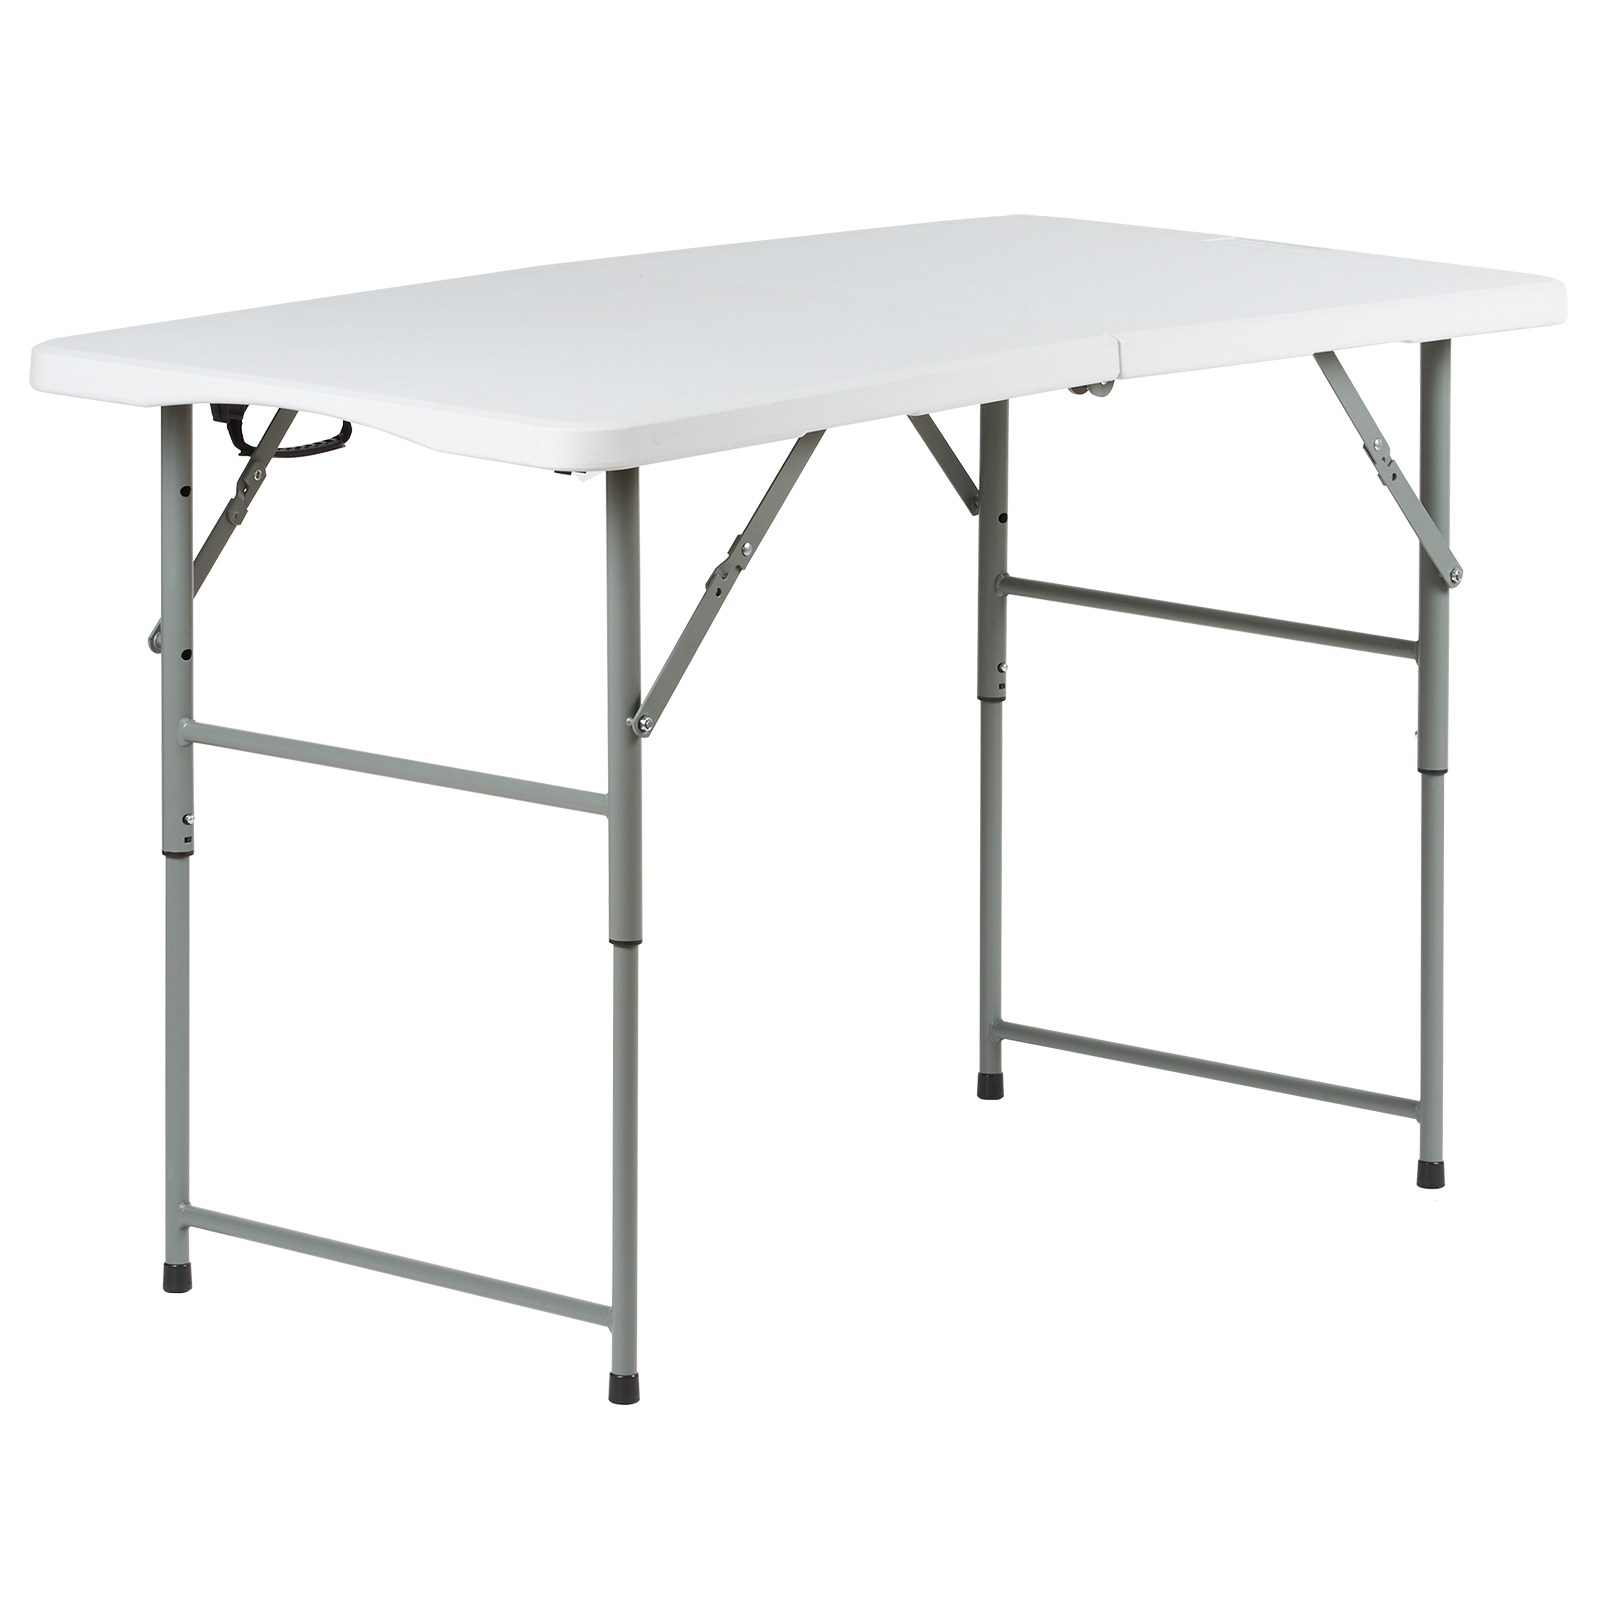 Tavoli Da Mercato Pieghevoli.4ft Folding Table Stall Market Fete Fair Art Camping Tradeshow